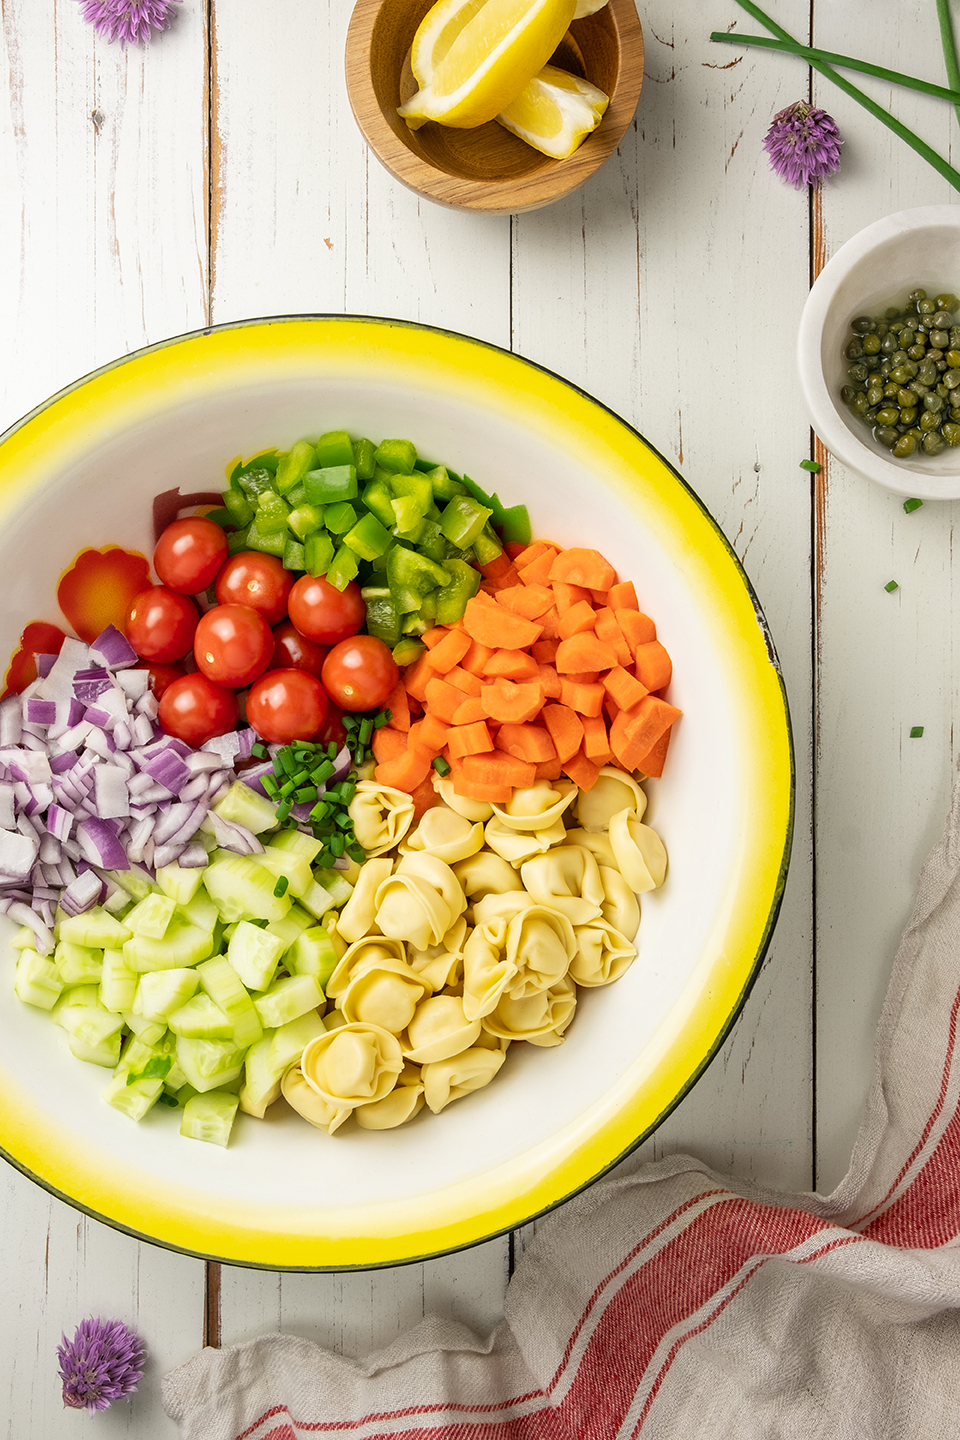 retouched ingredients for vegetable tortellini salad in a big bowl including carrots, tomatoes, and onions